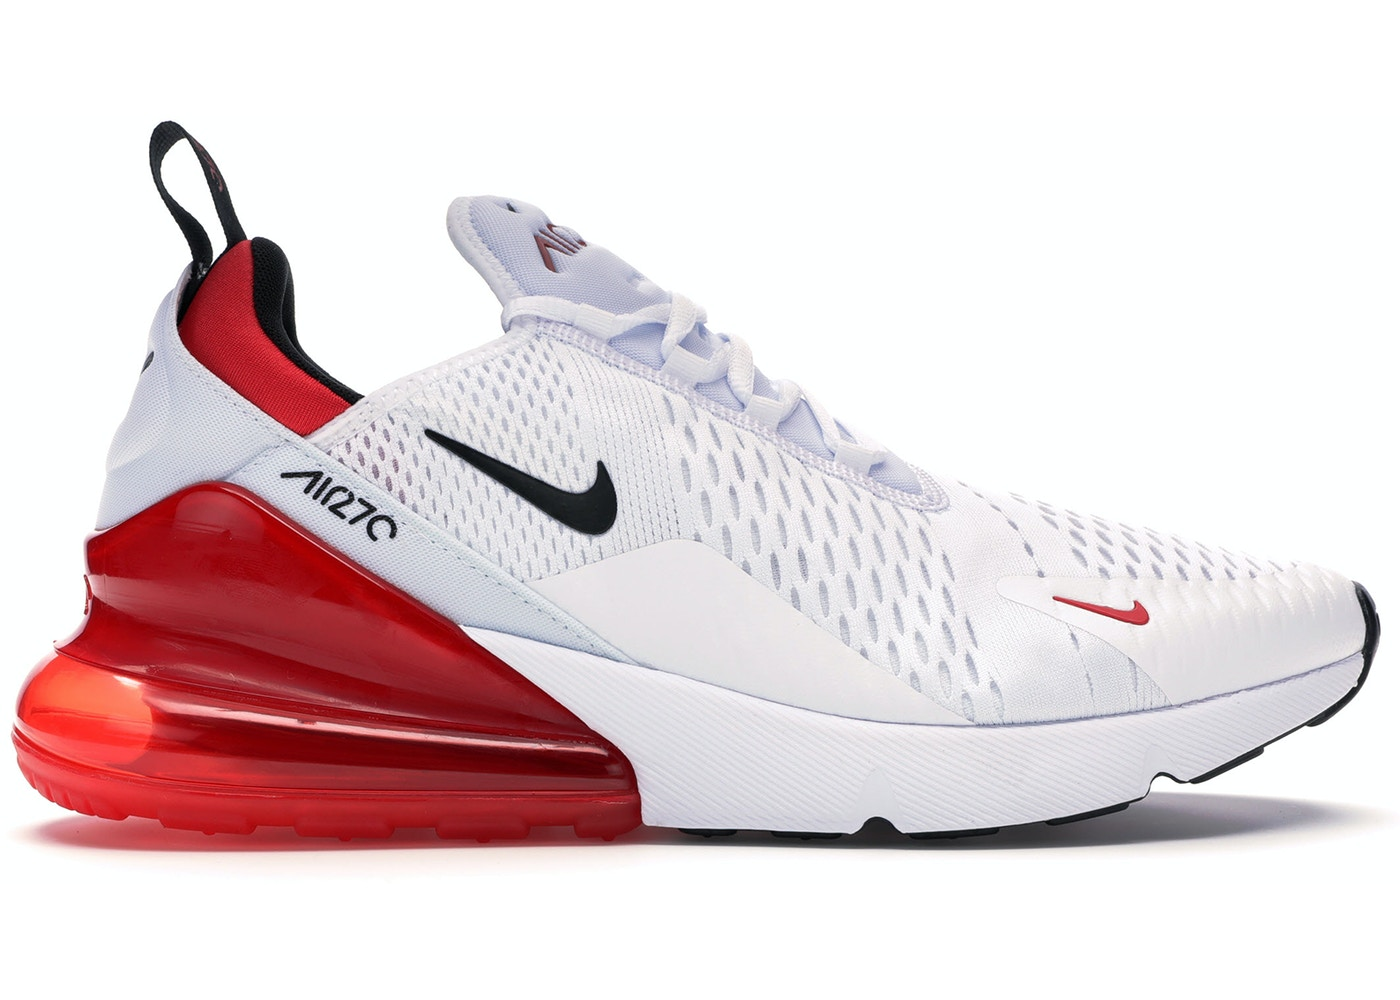 30c514ddf6 Air Max 270 White Black University Red - BV2523-100